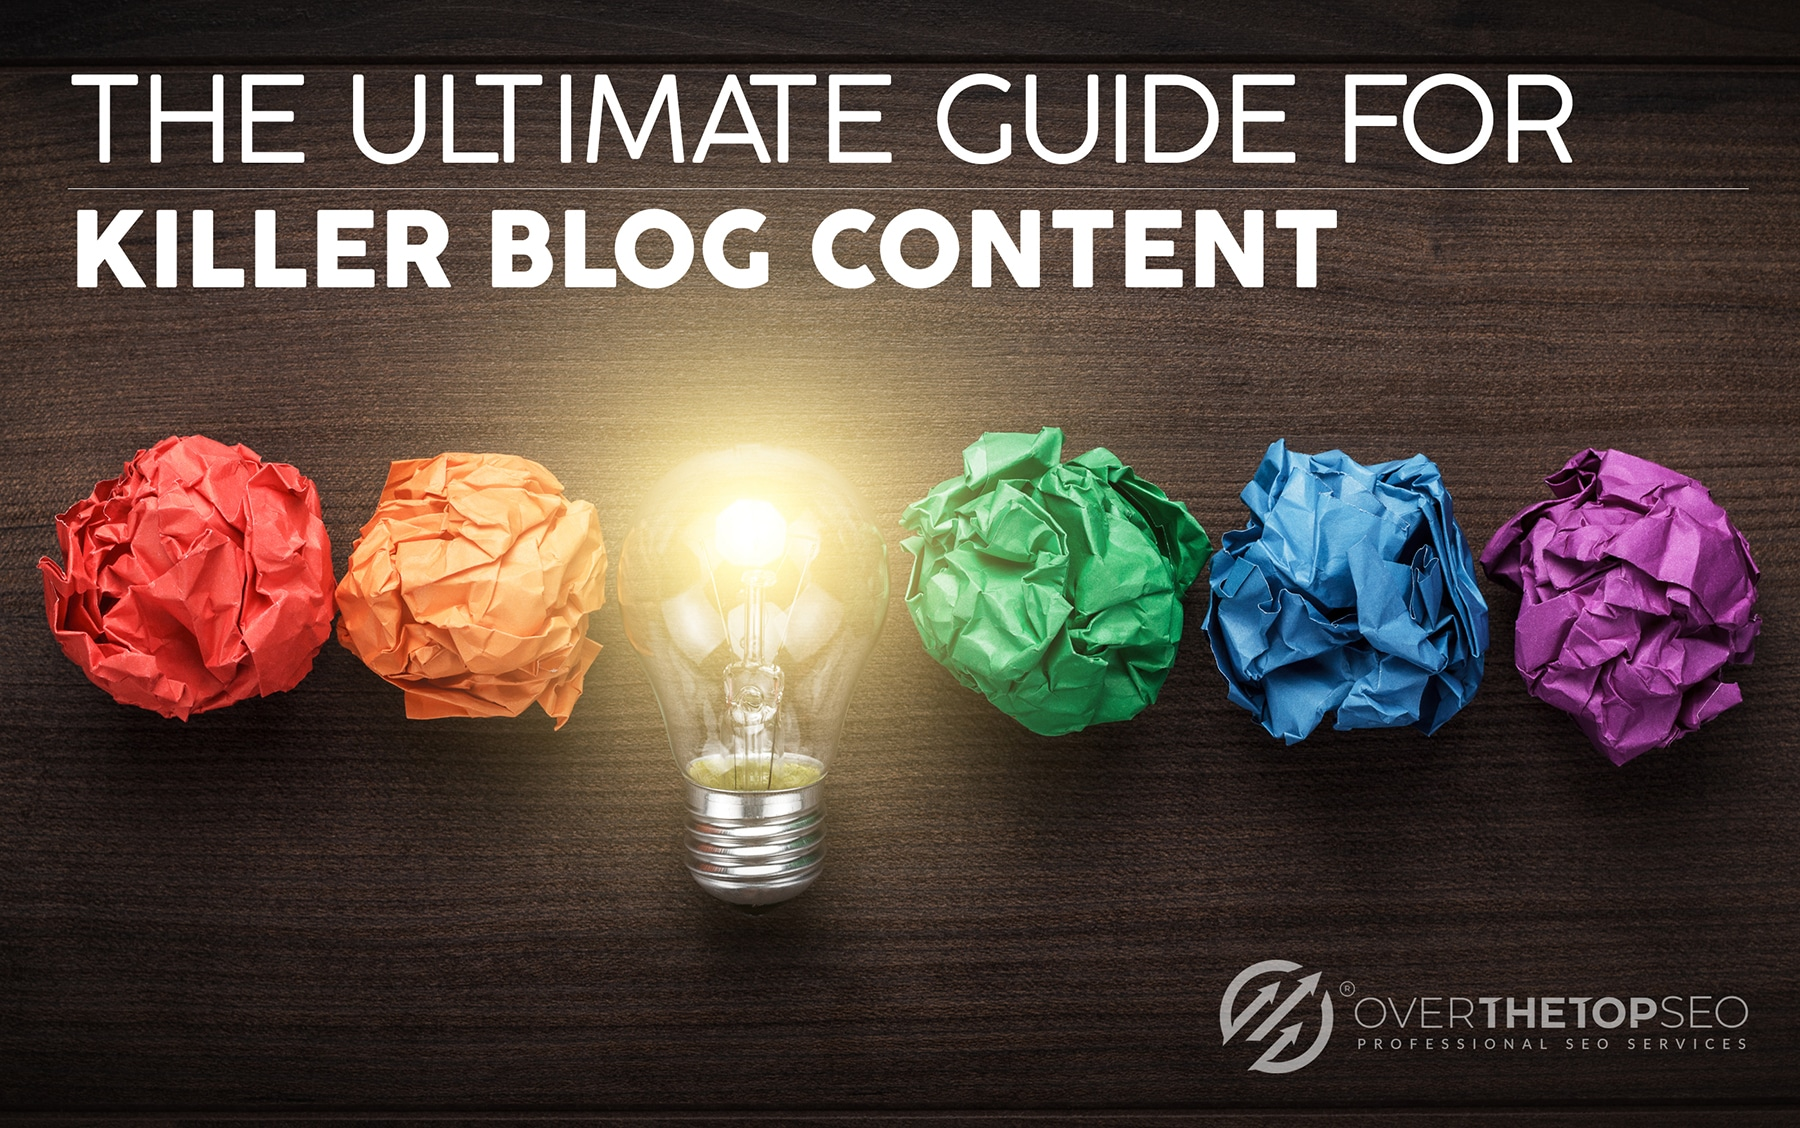 The Ultimate Guide for Killer Blog Content